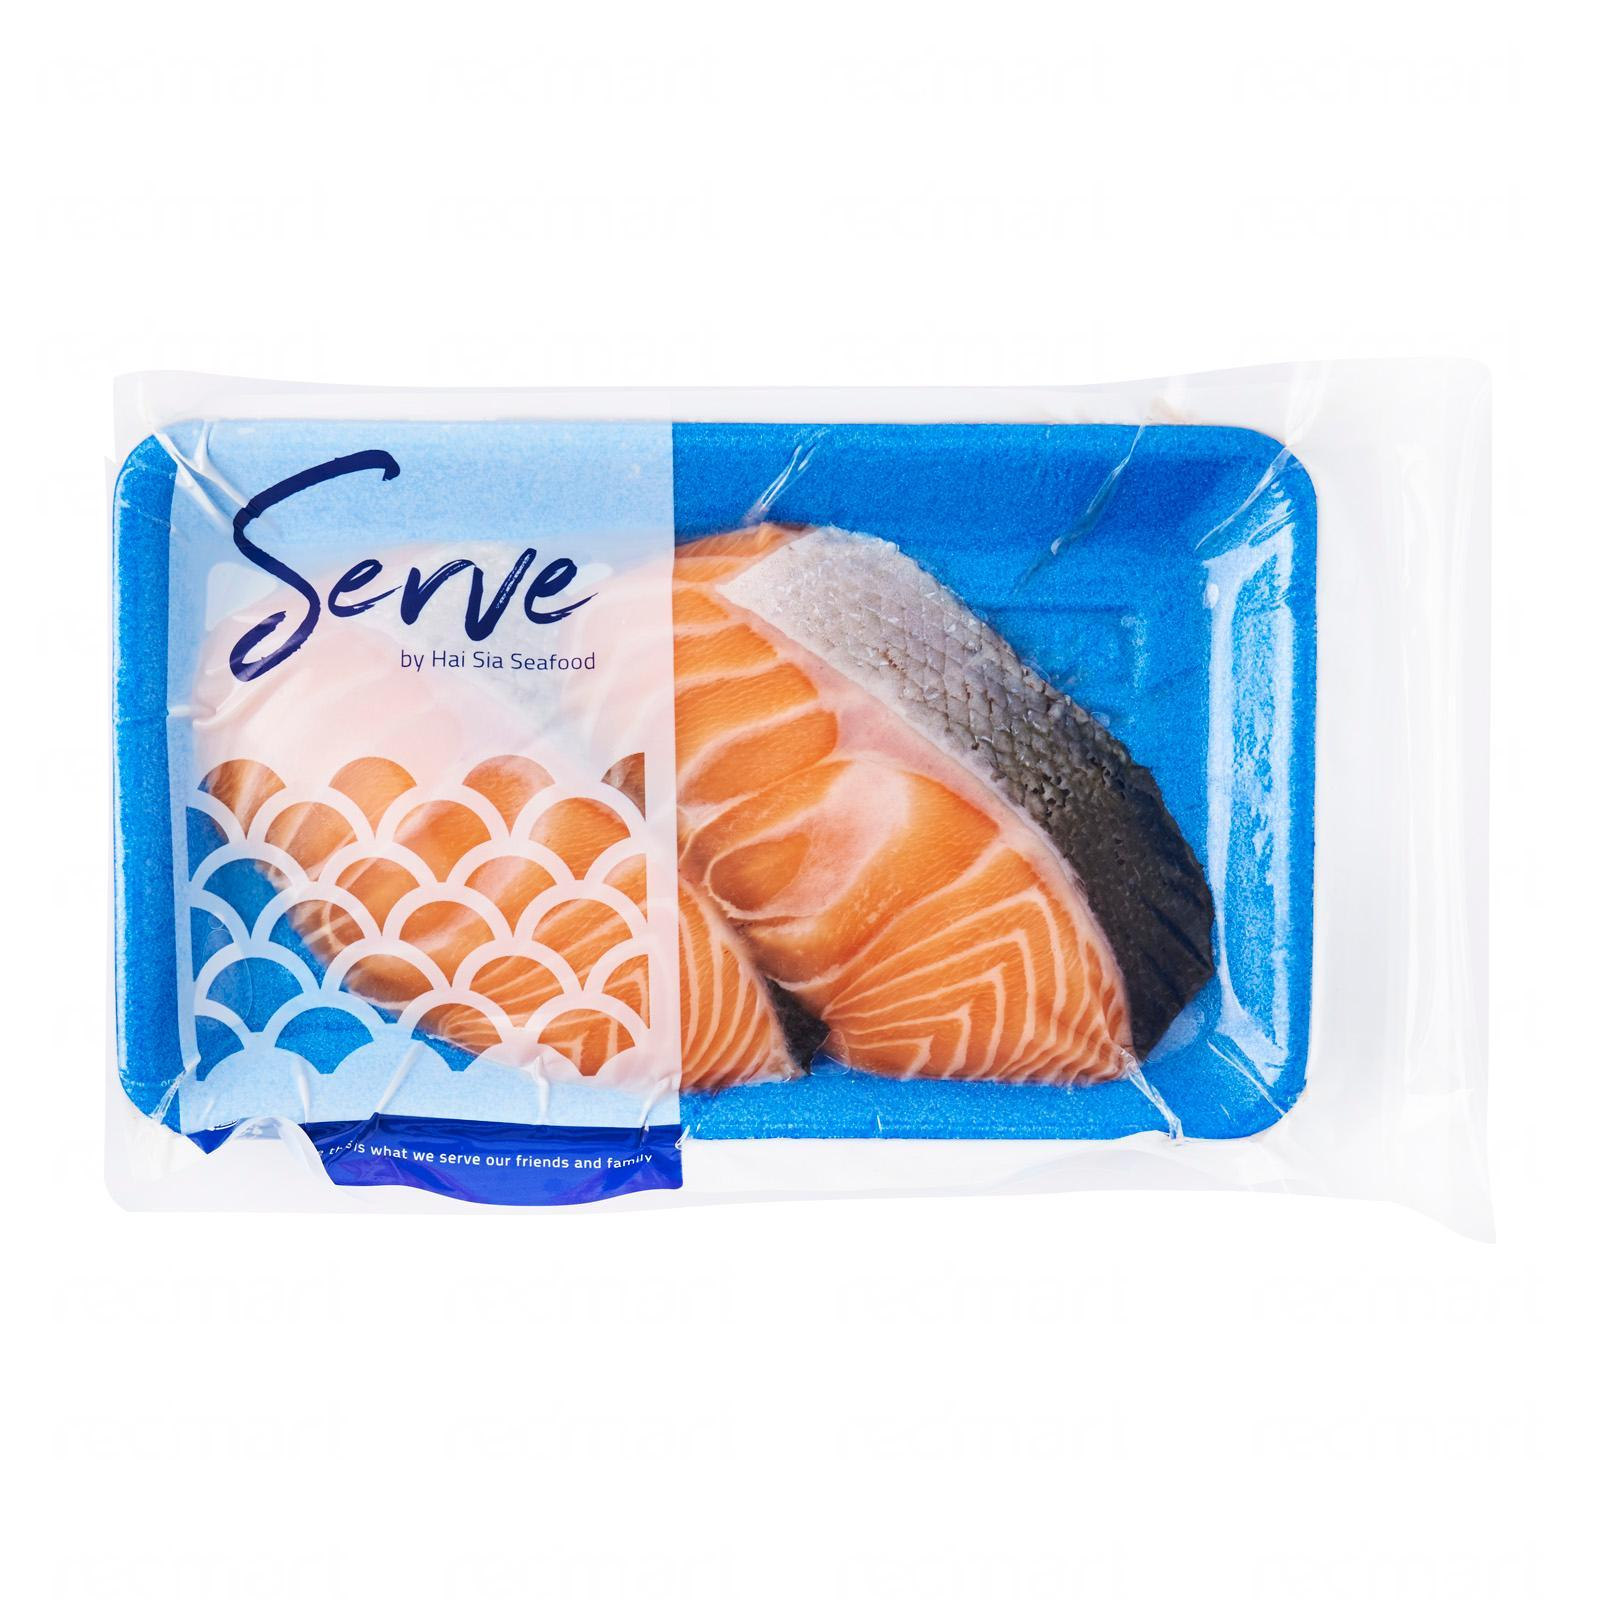 Serve by Hai Sia Seafood Norwegian Salmon Portions - Frozen